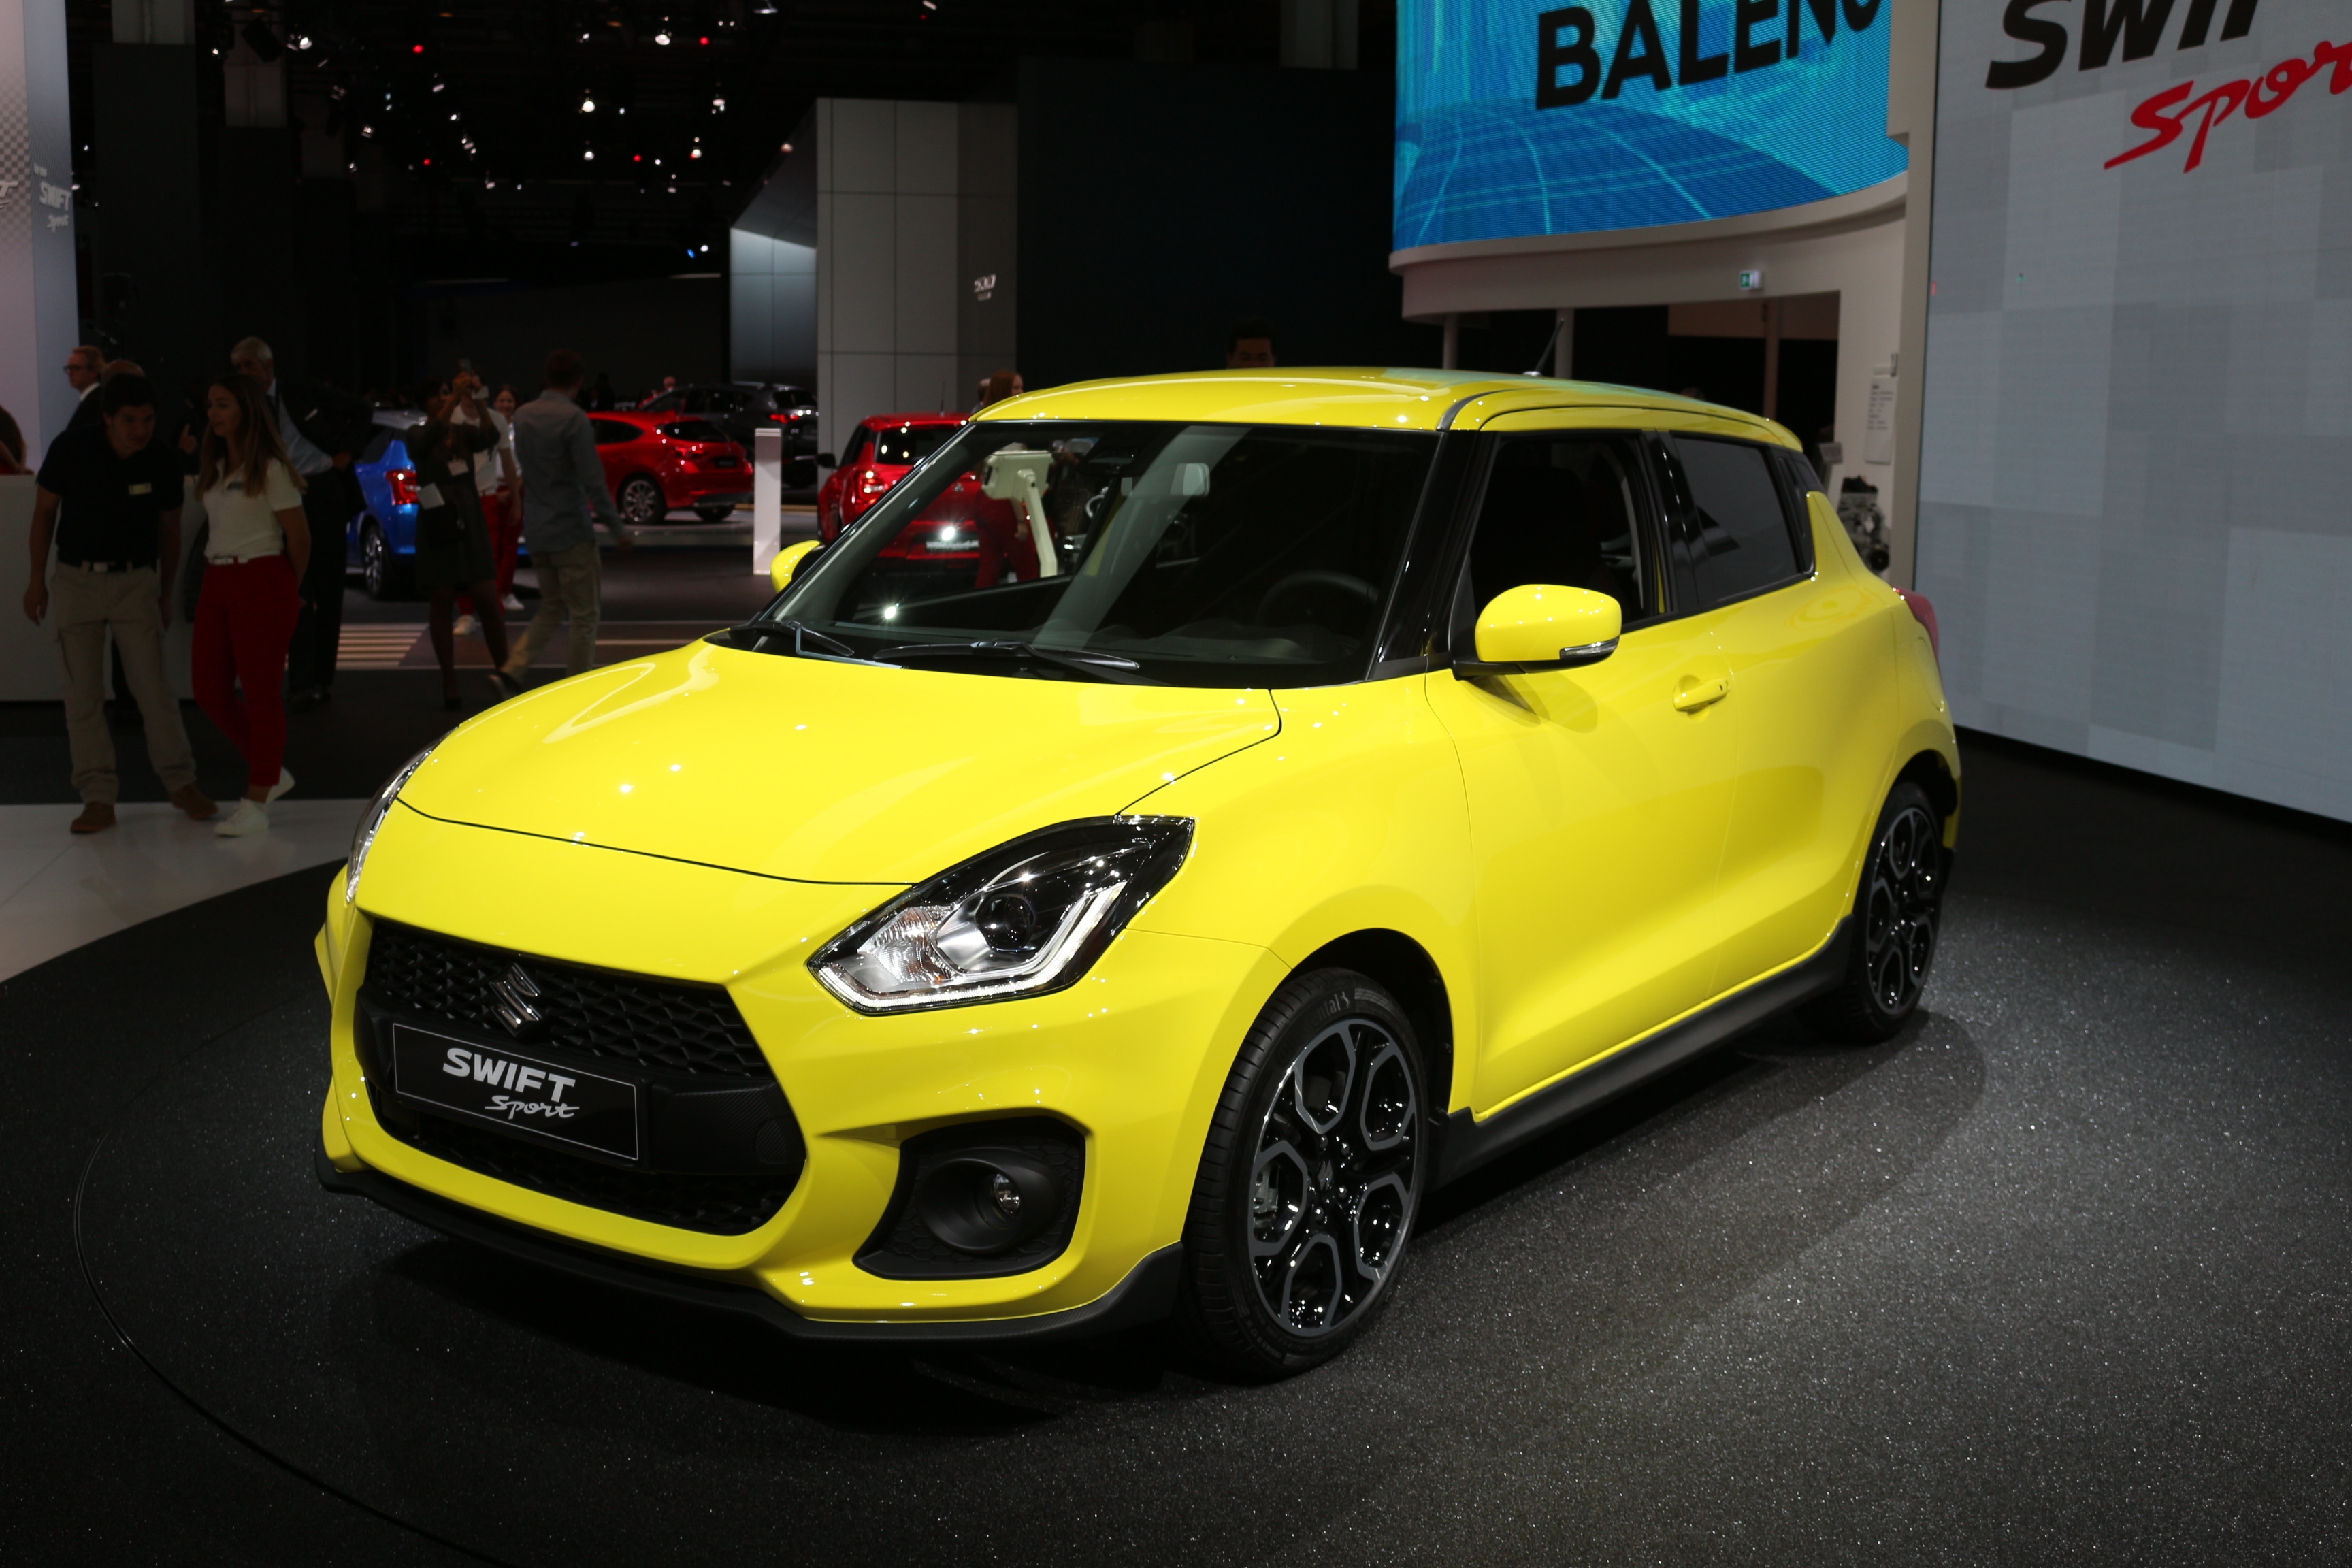 [Image: S0-salon-de-francfort-2017-suzuki-swift-...528809.jpg]